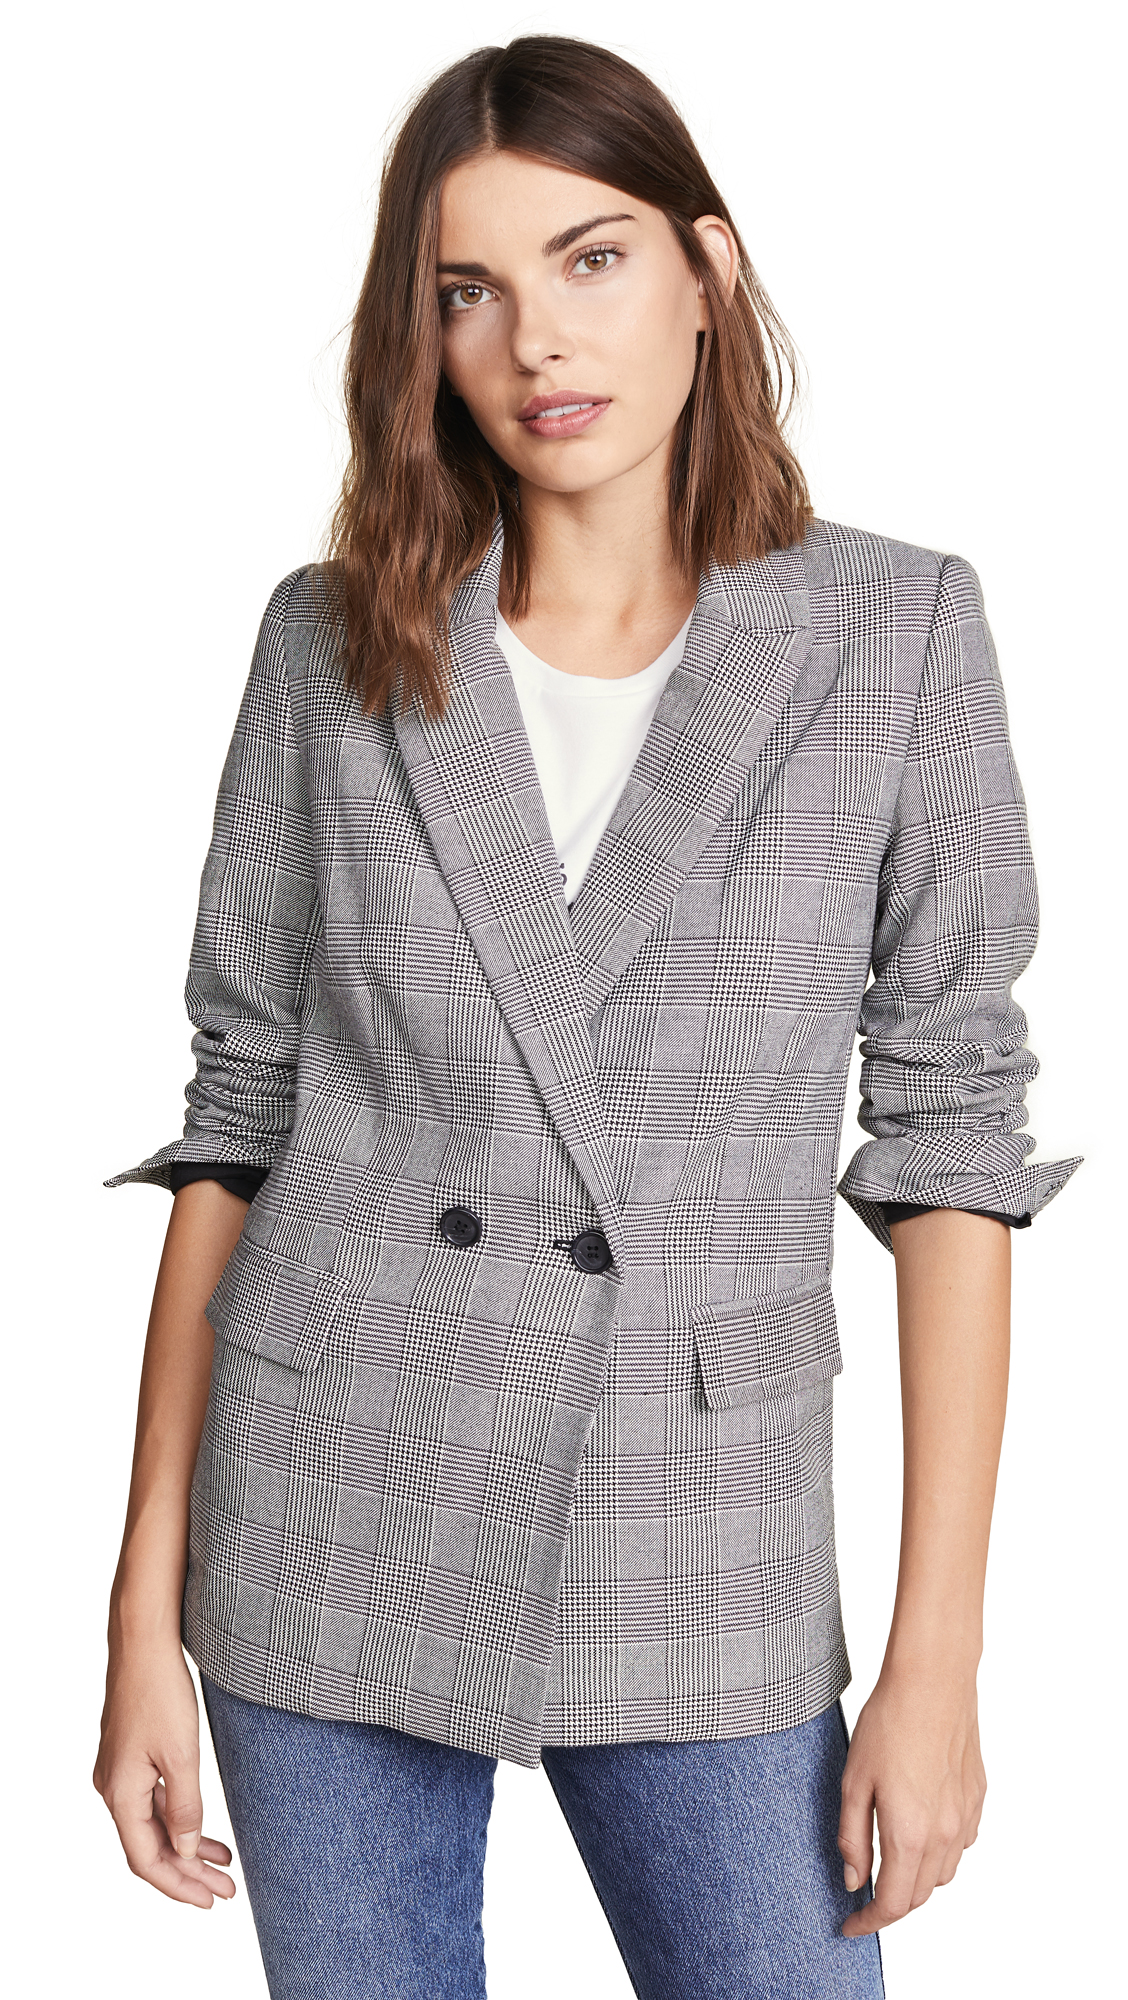 Celia Single-Button Check Jacket in Black Multi